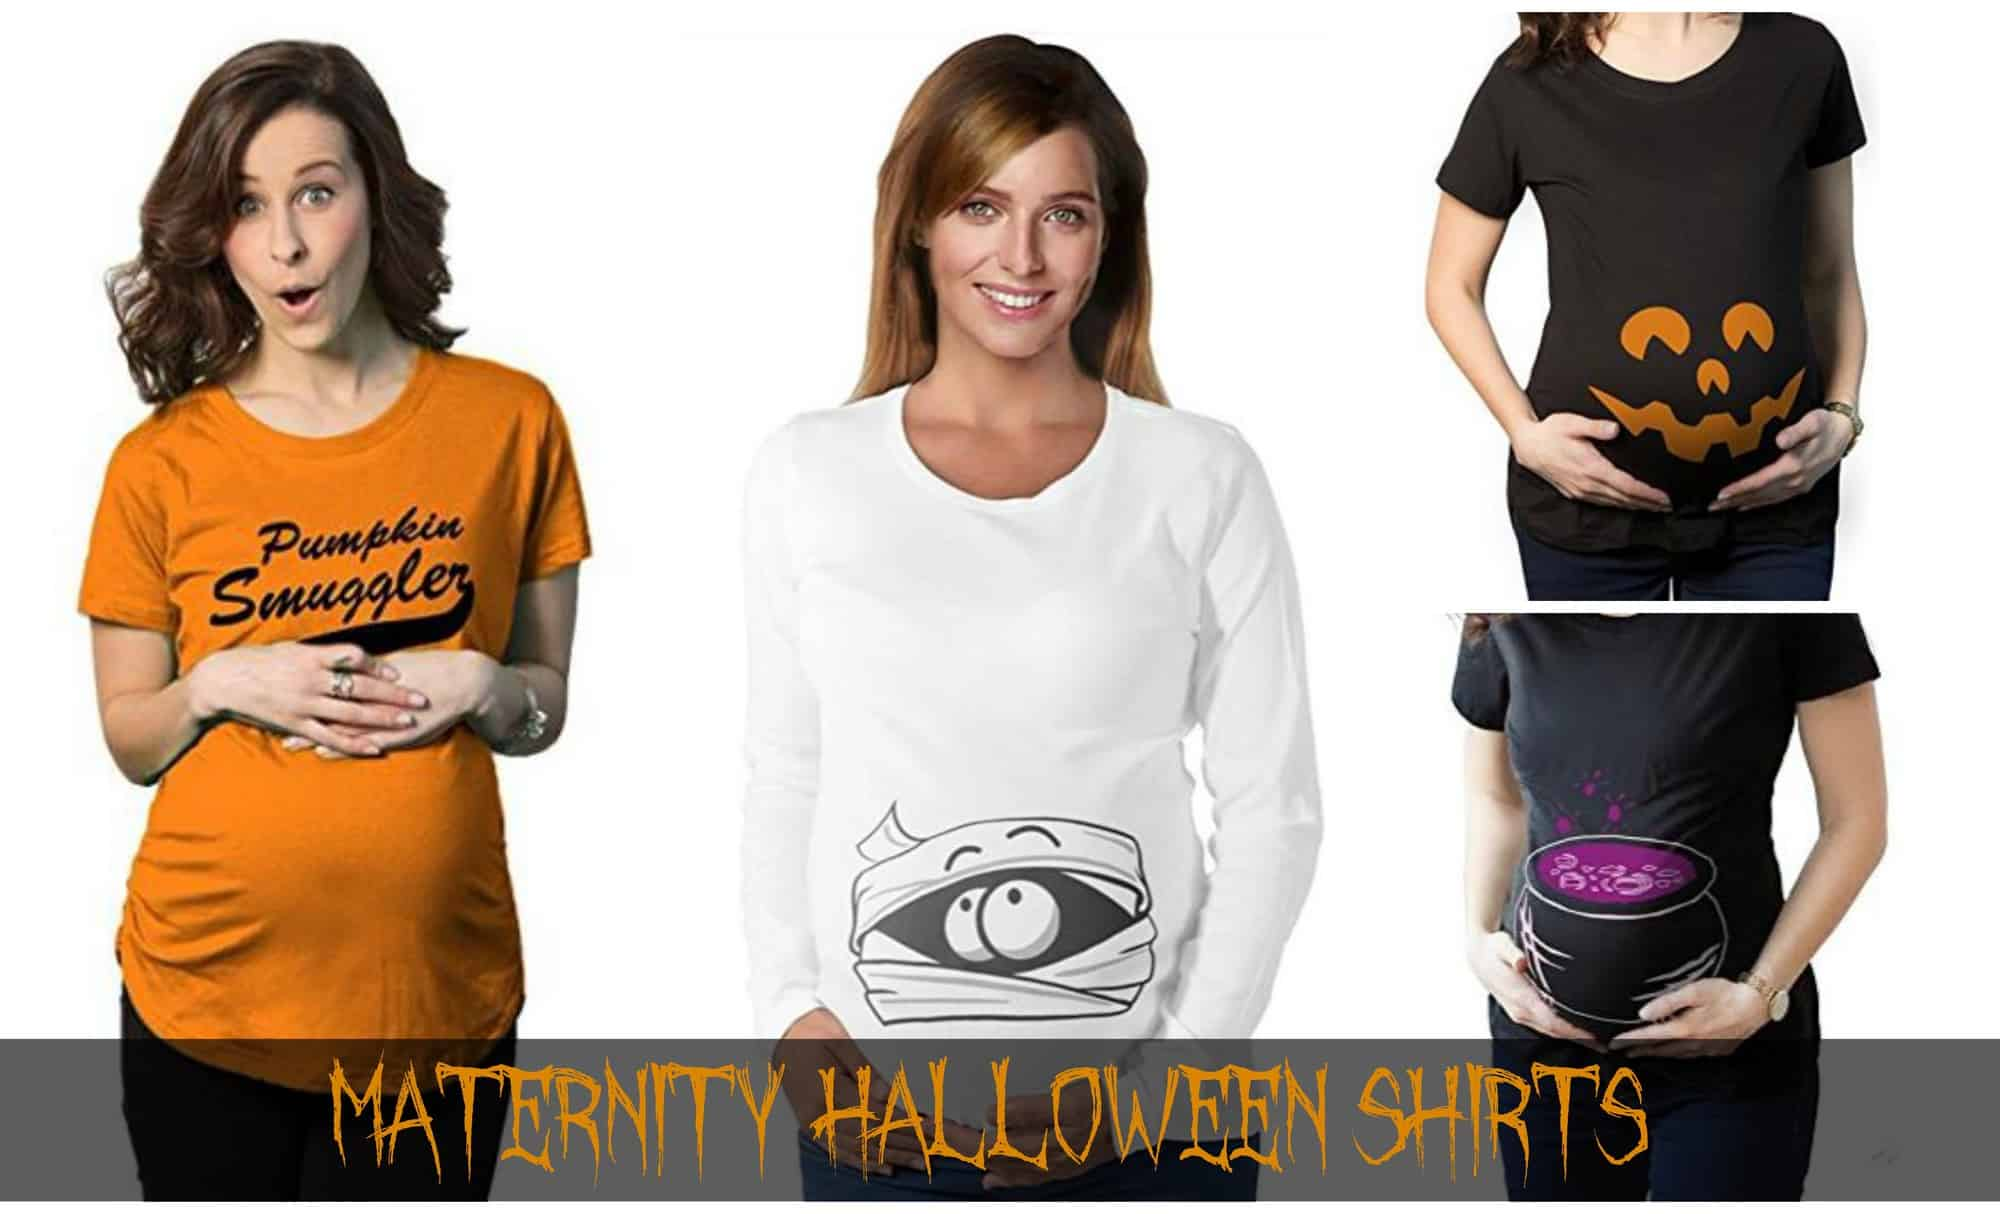 21+ Maternity Halloween Shirts for Pregnant Moms